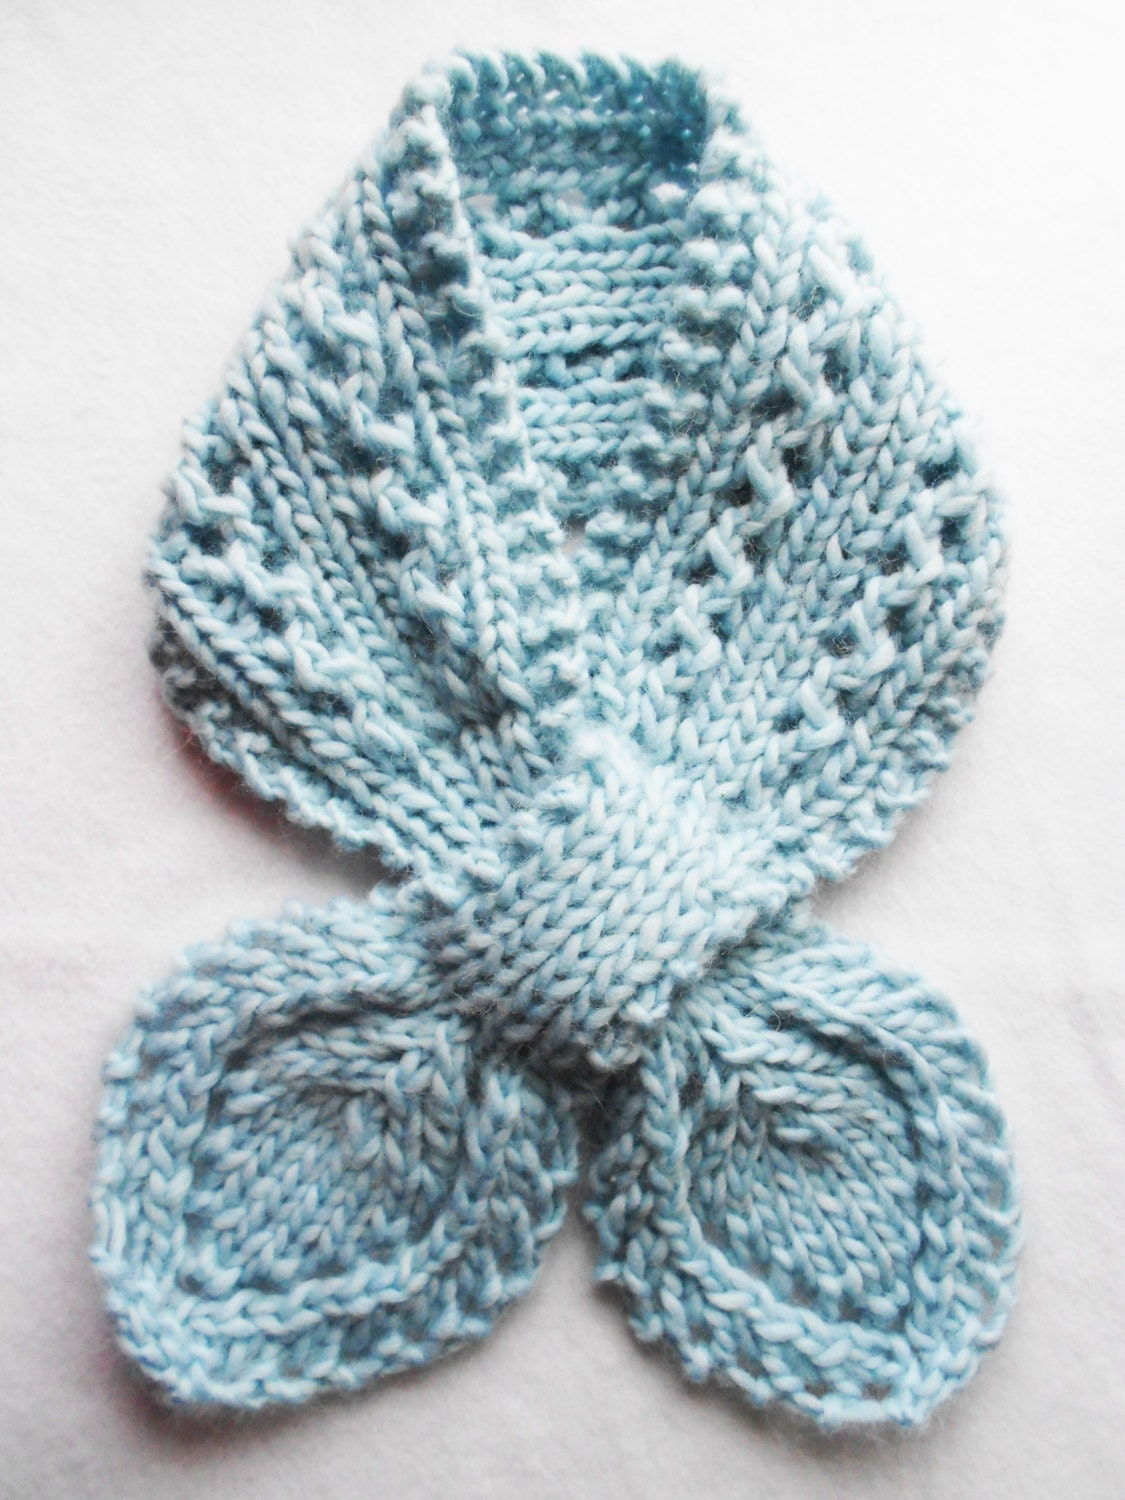 Knitting Pattern Bow Knot Scarf : Lace knitted bow tie scarf baby blue 100% wool adult by ...